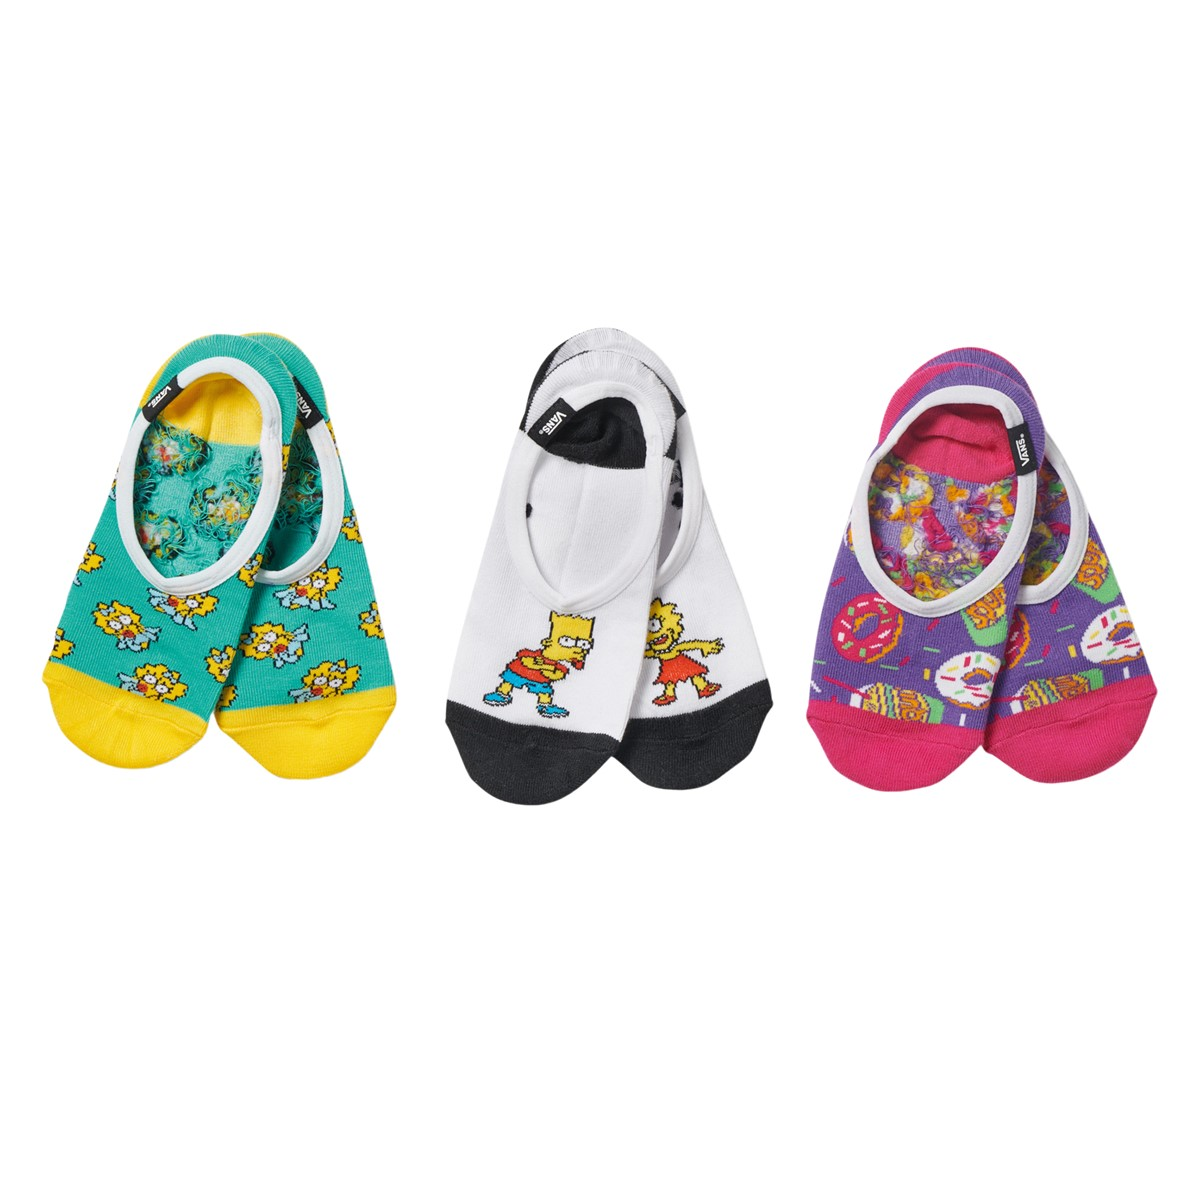 Women's The Simpsons Family Canoodle Socks